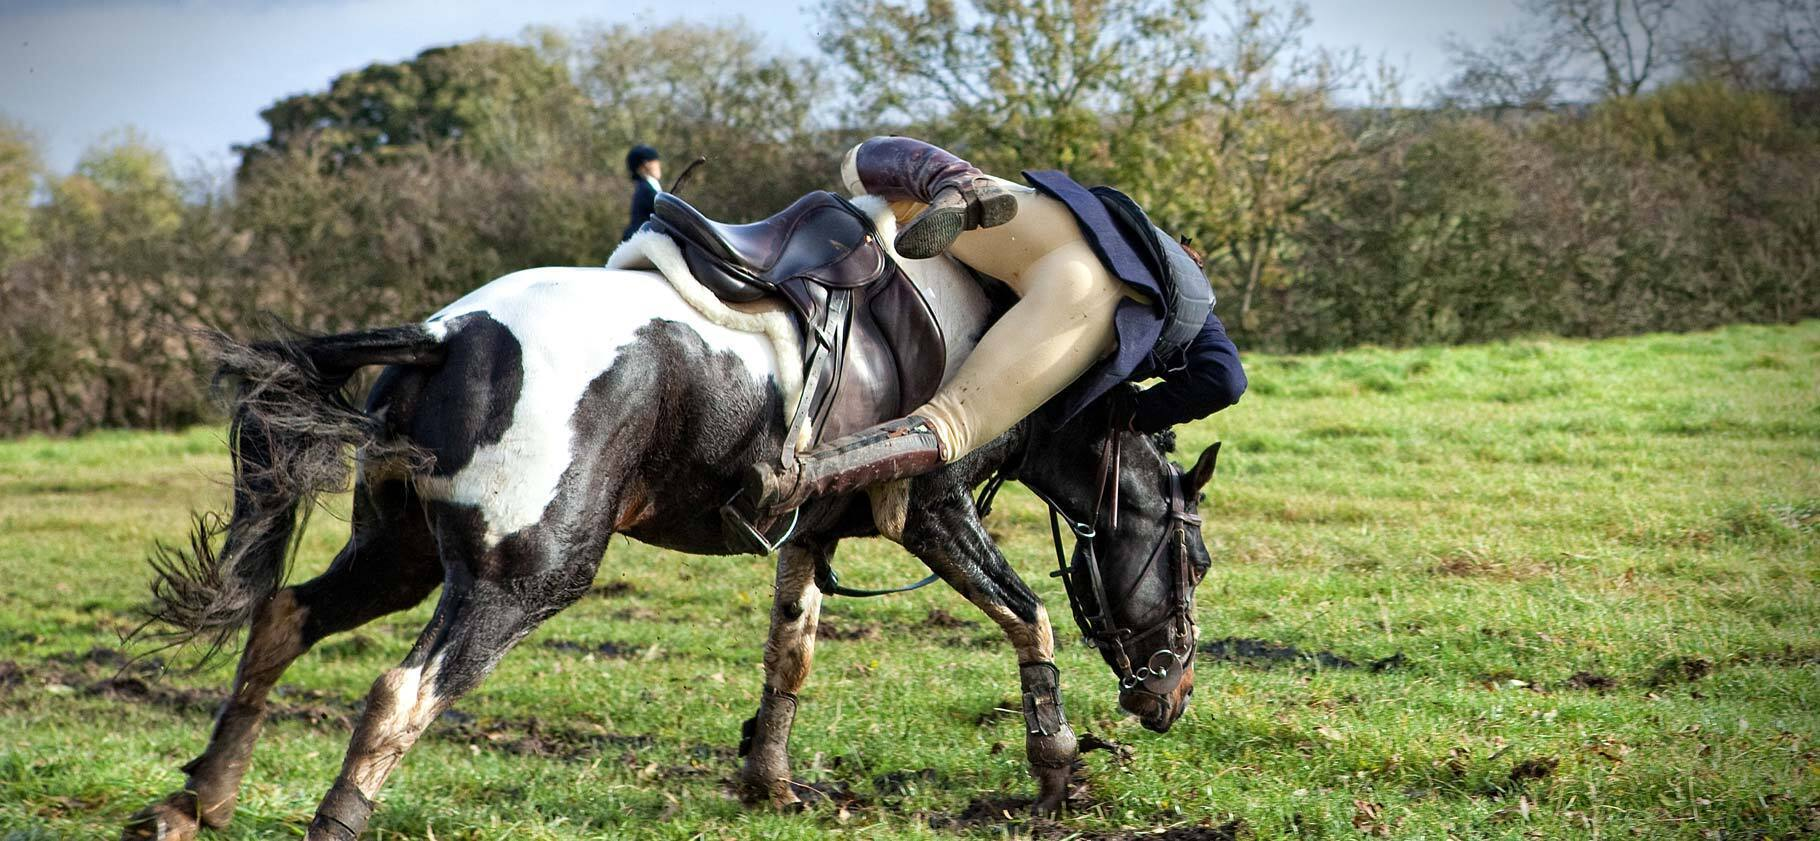 Some horse riding accidents are preventable